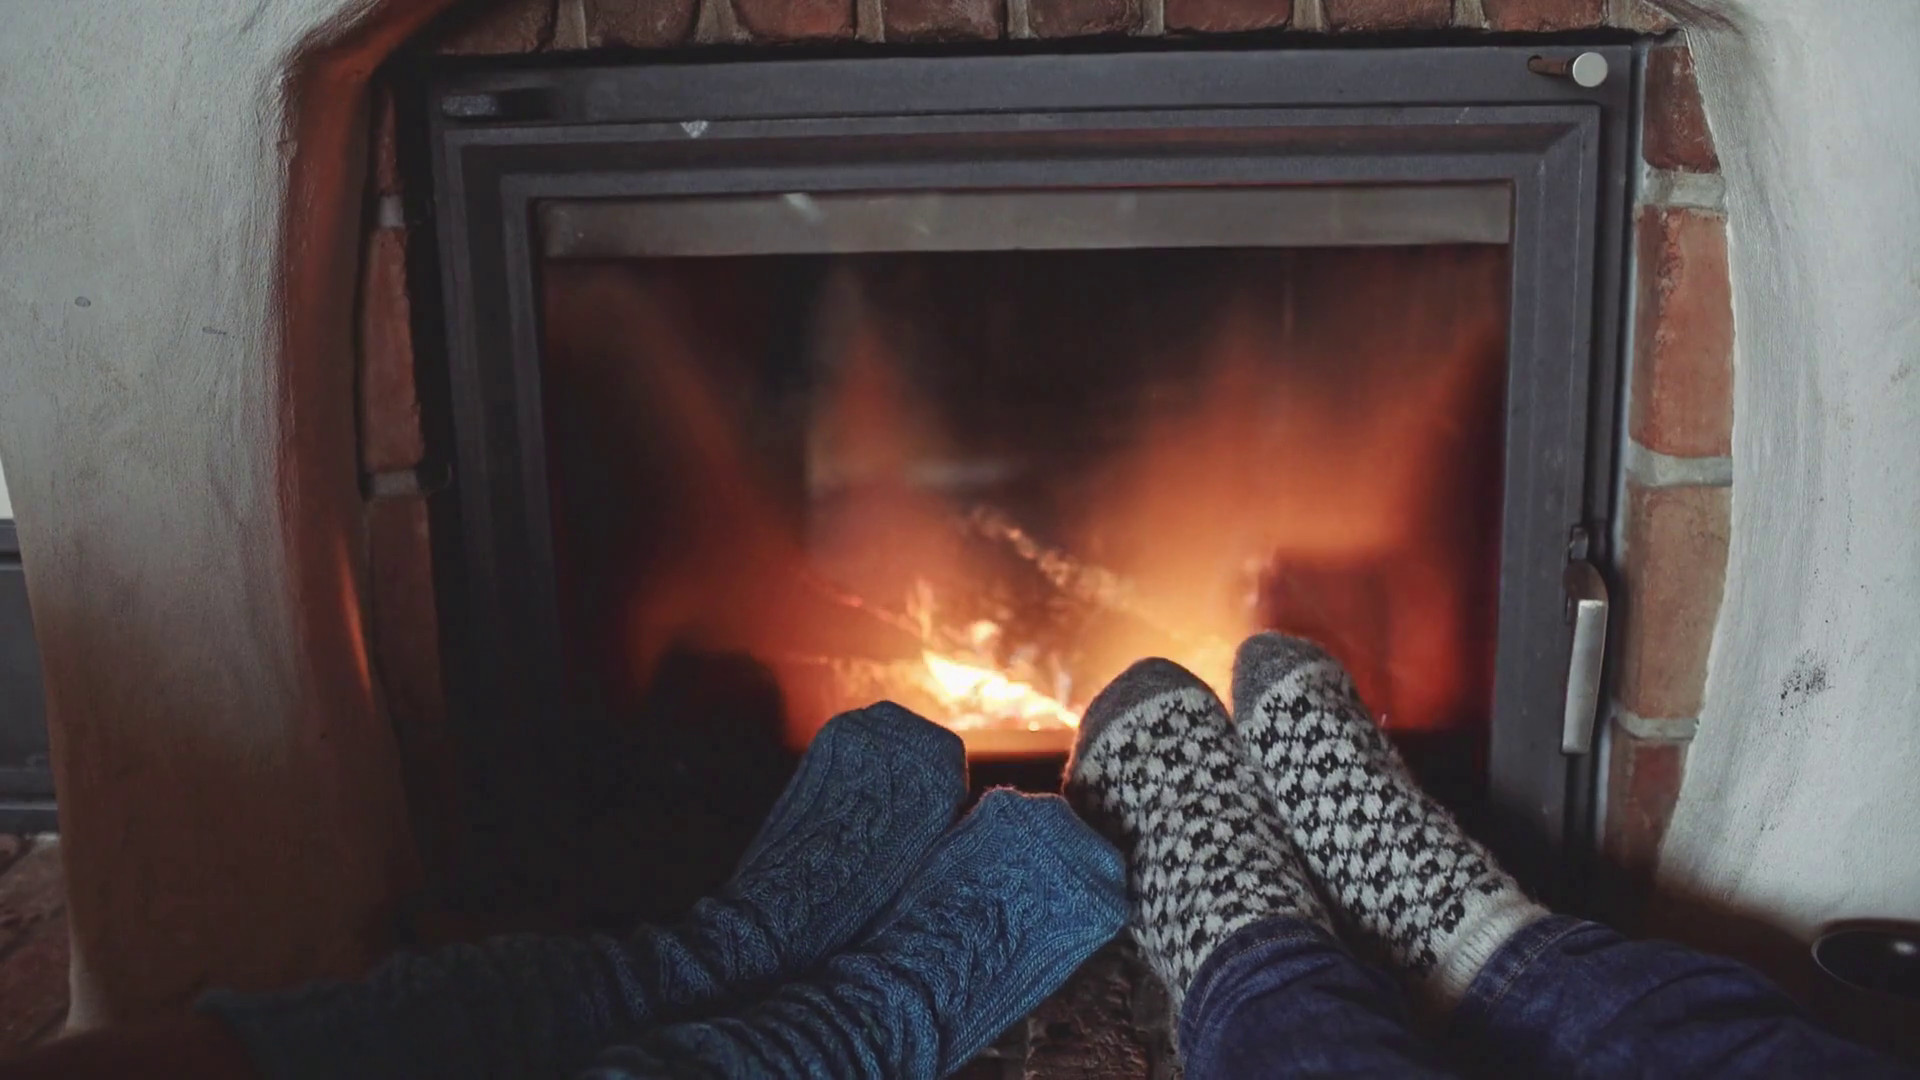 Christmas Sock Fireplace  Couple Feet in Woollen Socks by the Cozy Fireplace 4K